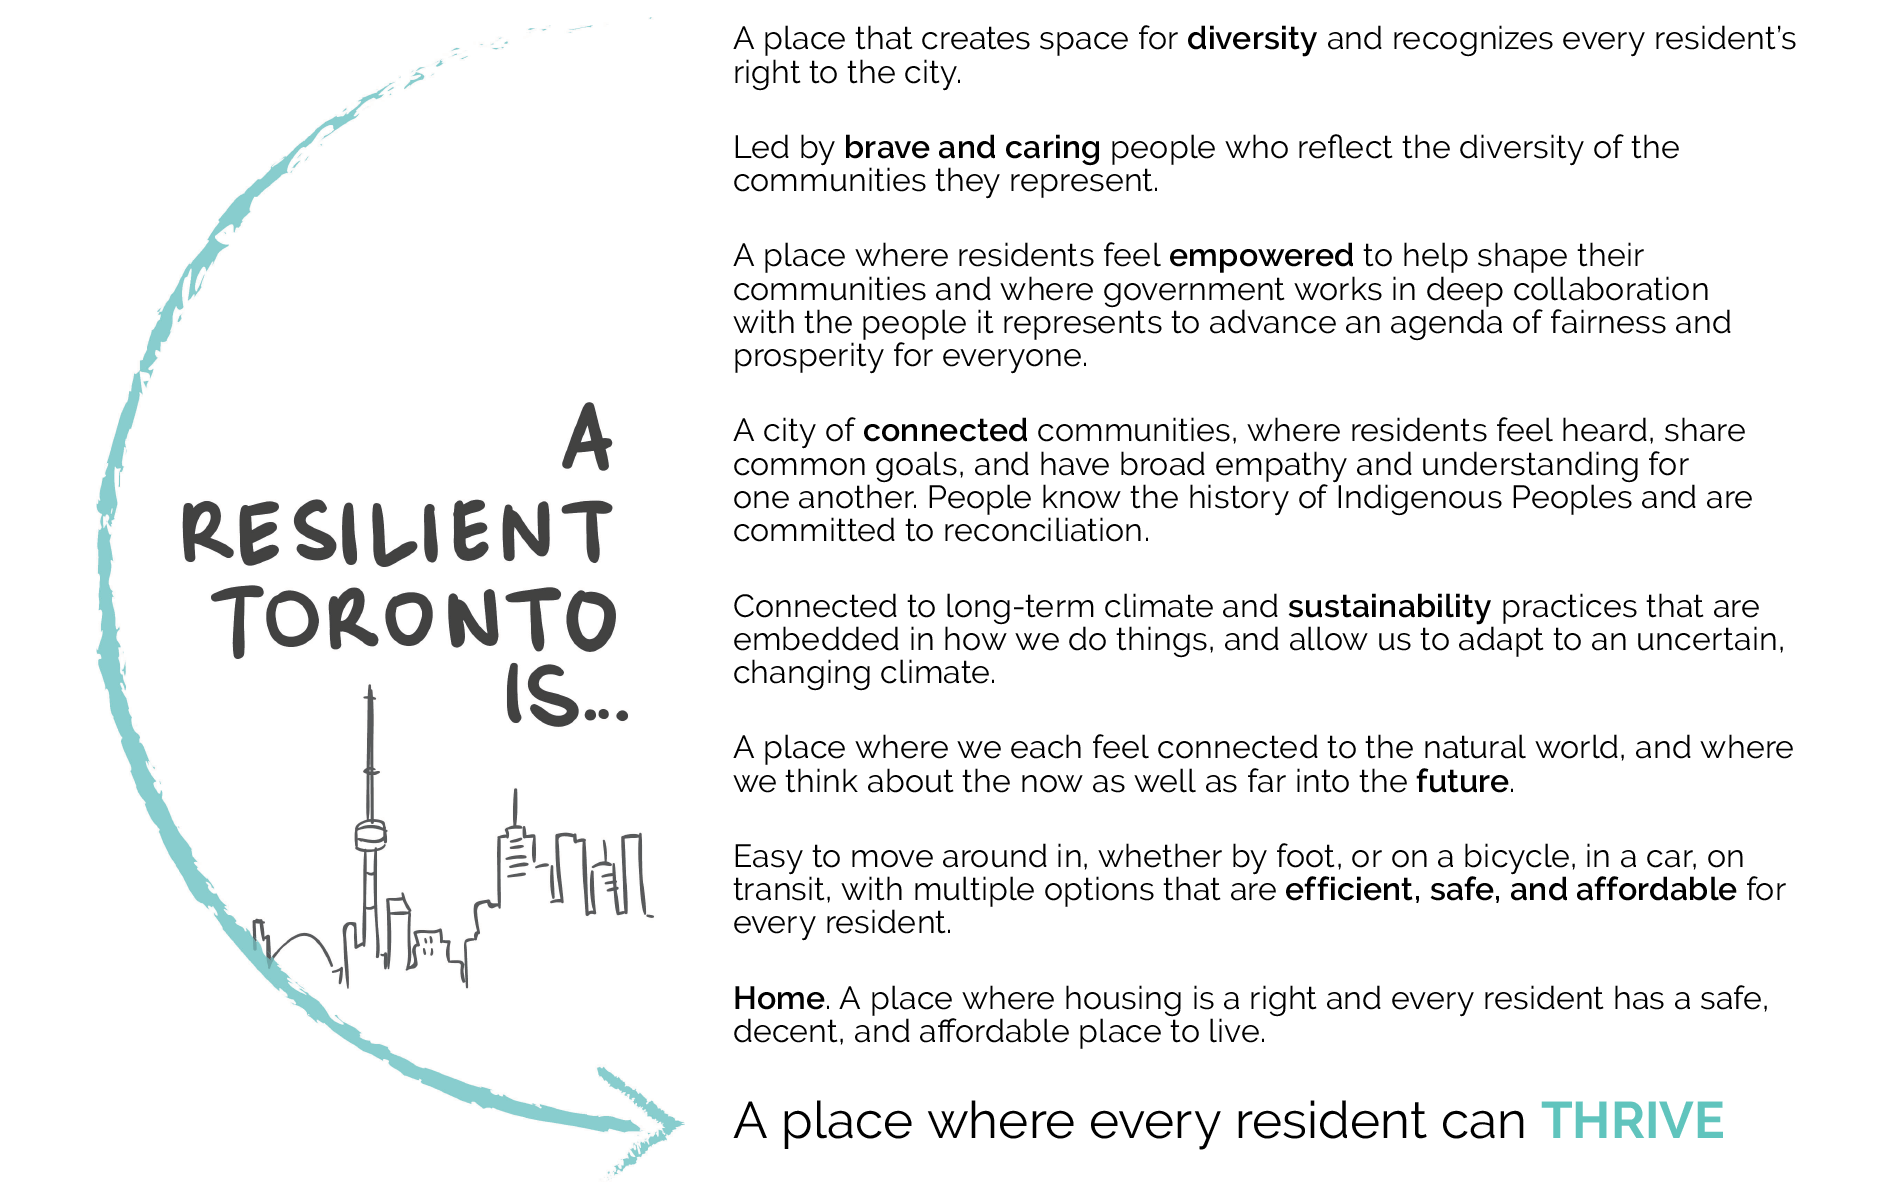 A resilient Toronto is…. A place that creates space for diversity and recognizes every resident's right to the city. Led by brave and caring people who reflect the diversity of the communities they represent. A place where residents feel empowered to help shape their communities and where government works in deep collaboration with the people it represents to advance an agenda of fairness and prosperity for everyone. A city of connected communities, where residents feel heard, share common goals, and have broad empathy and understanding for one another. People know the history of Indigenous Peoples and are committed to reconciliation. Connected to long-term climate and sustainability practices that are embedded in how we do things, and allow us to adapt to an uncertain, changing climate. A place where we each feel connected to the natural world, and where we think about the now as well as far into the future. Easy to move around in, whether by foot, on a bicycle, in a car, on by transit, with multiple options that are efficient, safe, and affordable for every resident. Home. A place where housing is a right, and every resident has a safe, decent, and affordable place to live. A place where every resident can thrive.